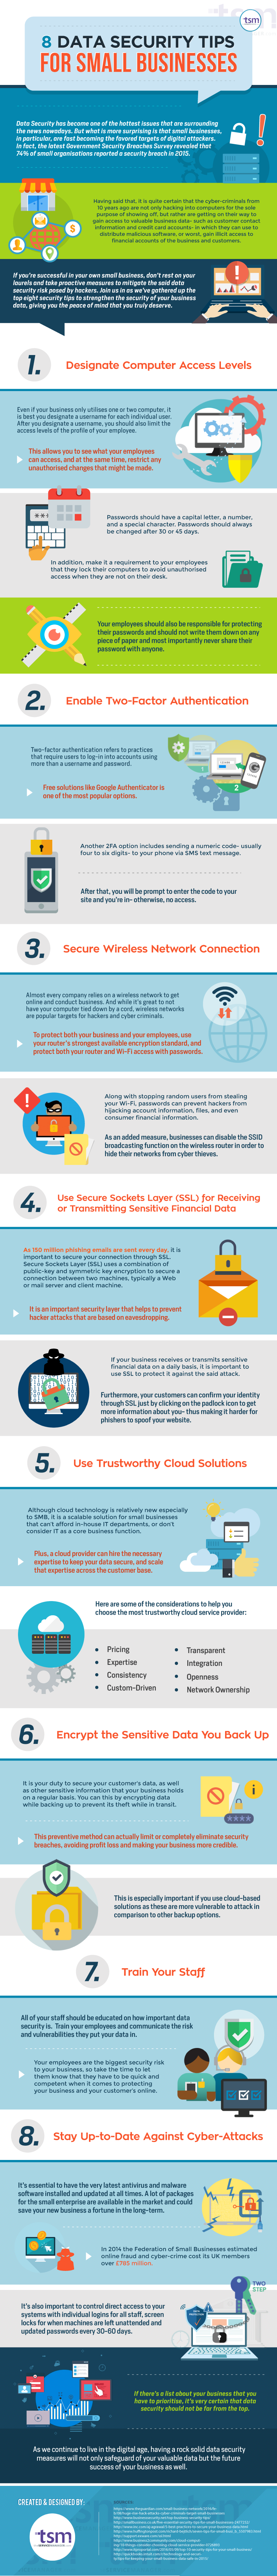 8-data-security-tips-for-small-businesses-hd